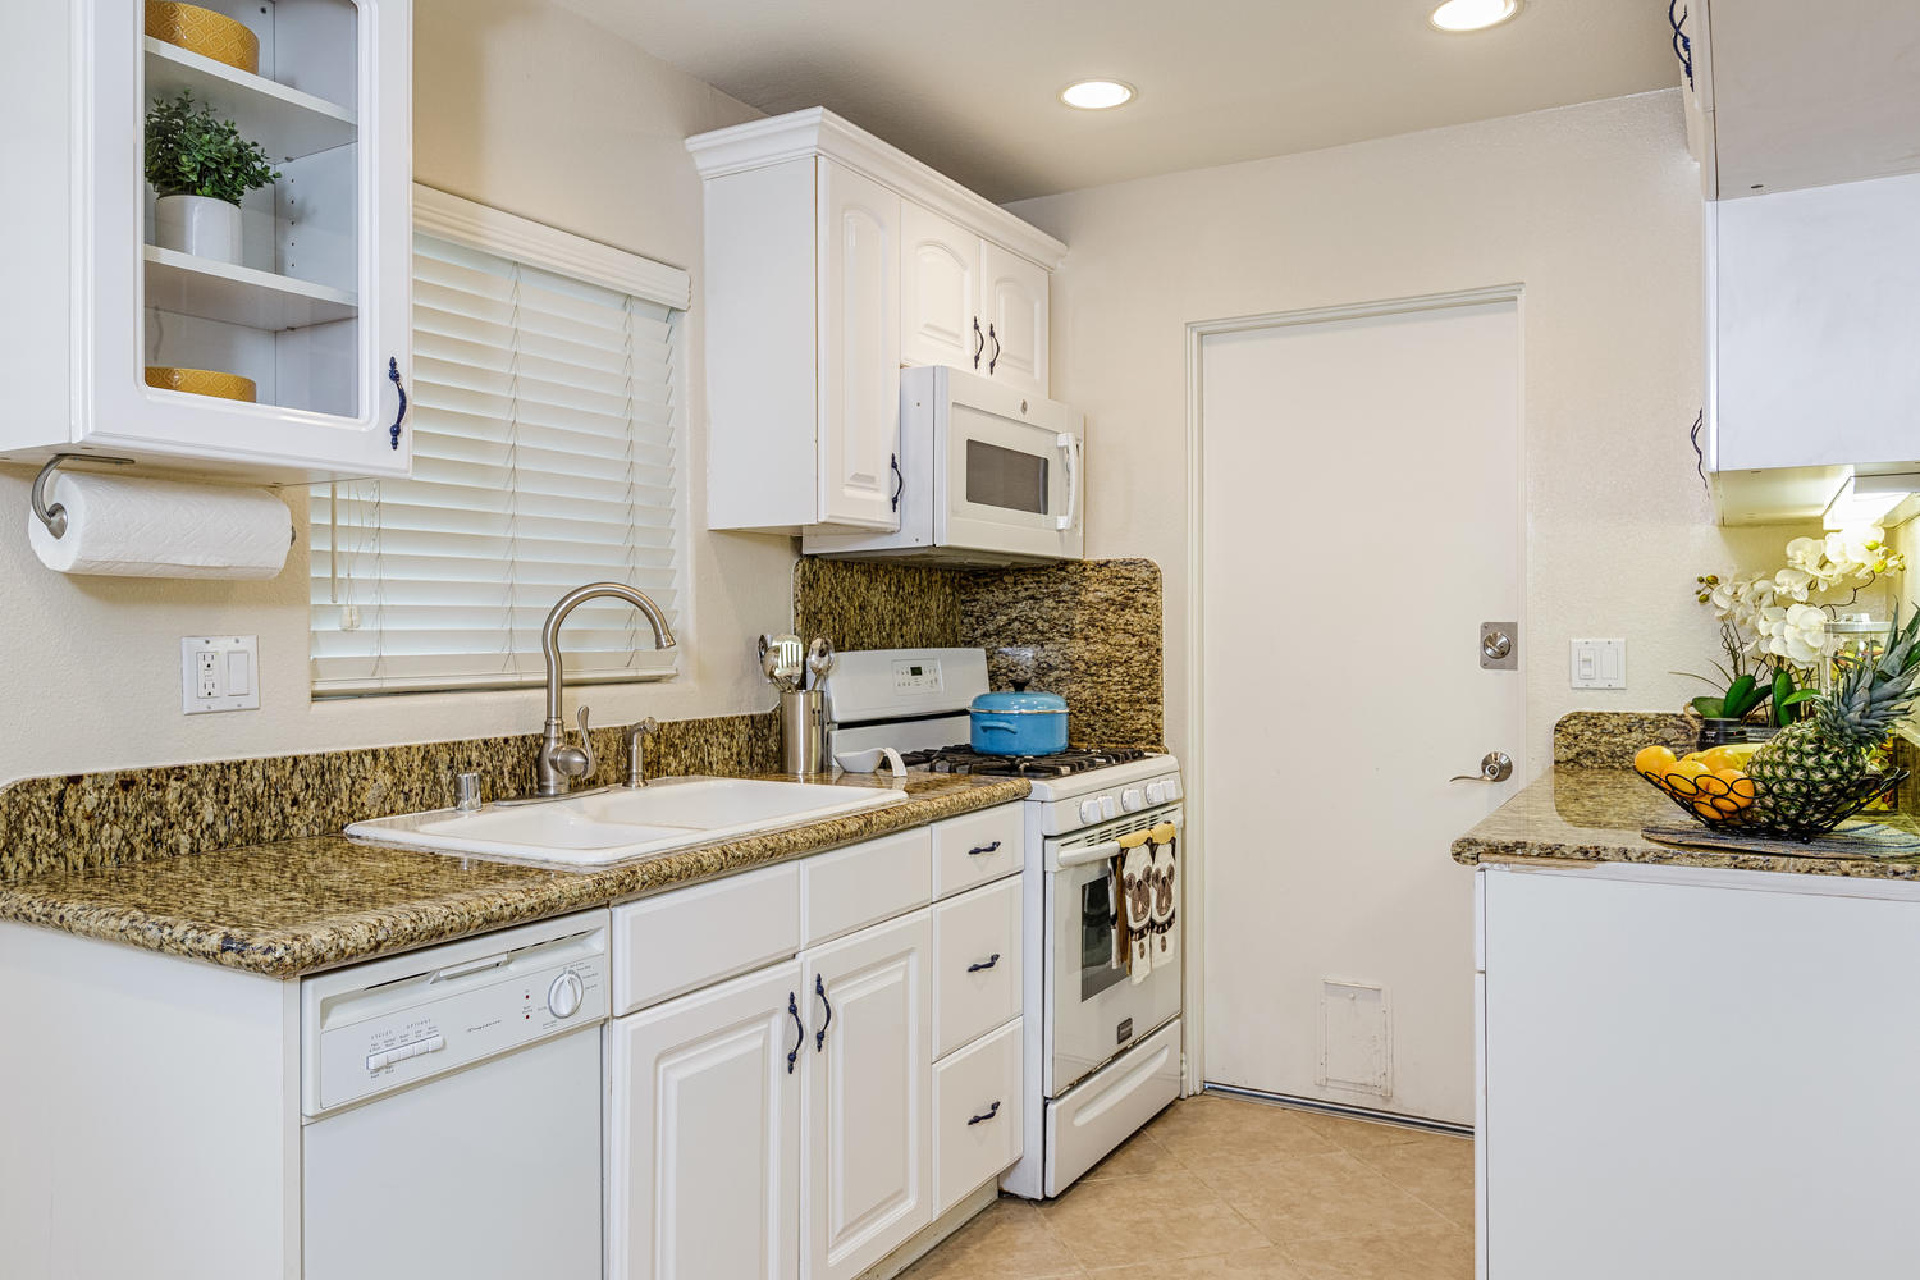 https://addressrealestate.com/media/images/blogs/38/2/b_7-1408-ocean-dr-oxnard-ca-93035-mls-size-005-9-kitchen-1500x1000-72dpi.jpg